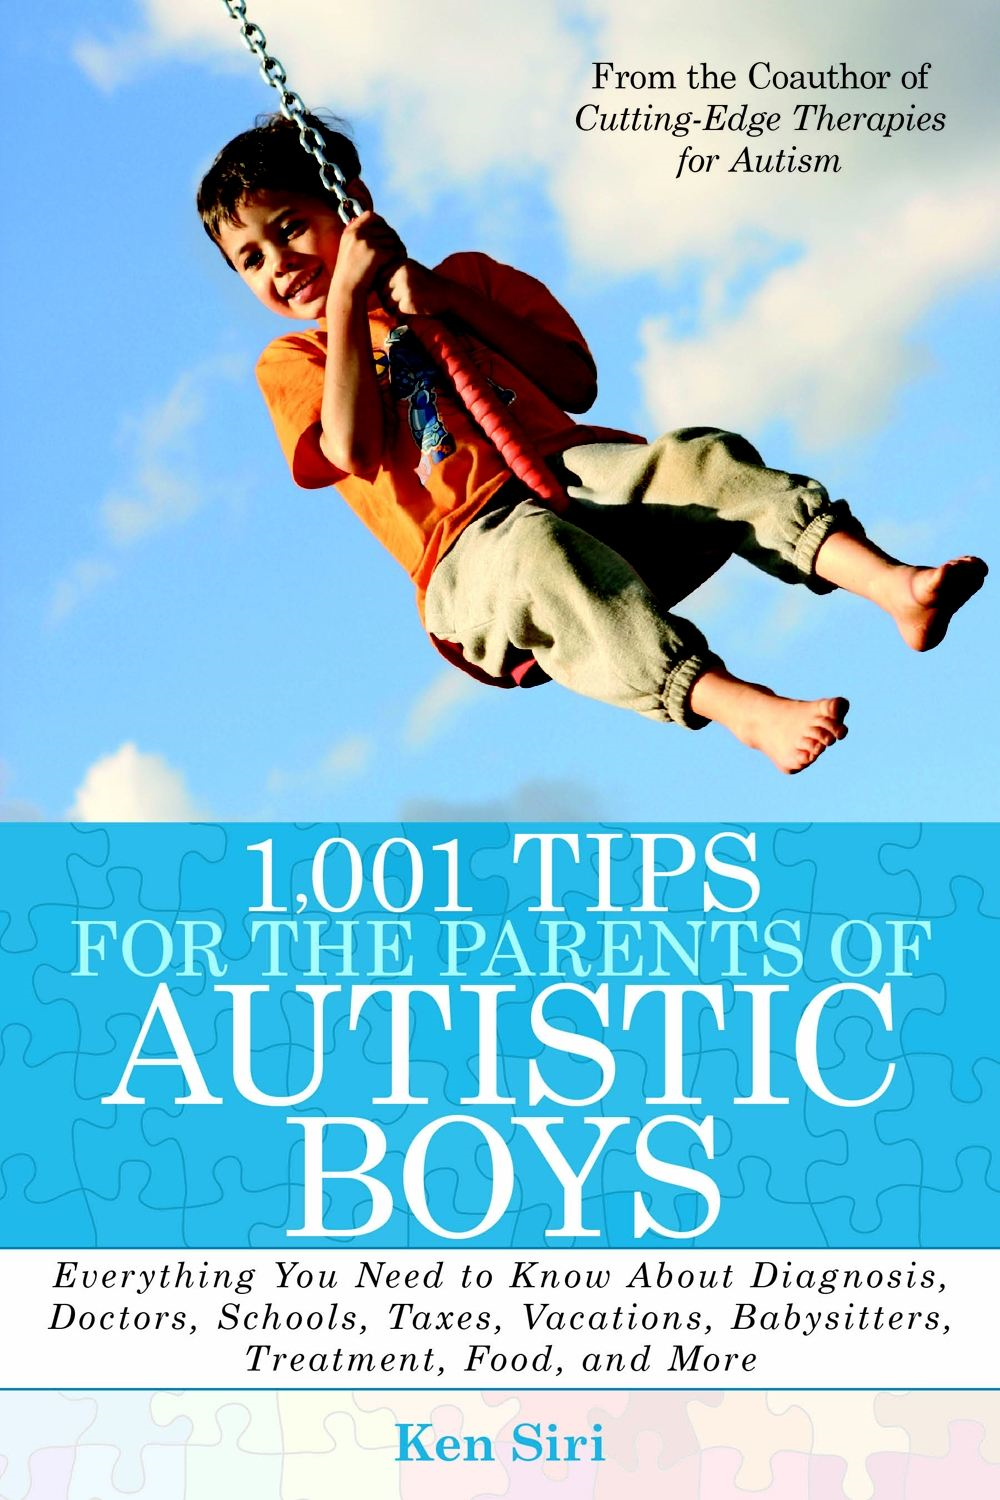 1,001 Tips for the Parents of Autistic Boys: Everything You Need to Know About Diagnosis, Doctors, Schools, Taxes, Vacations, Babysitters, Treatments, Food, and More By: Ken Siri